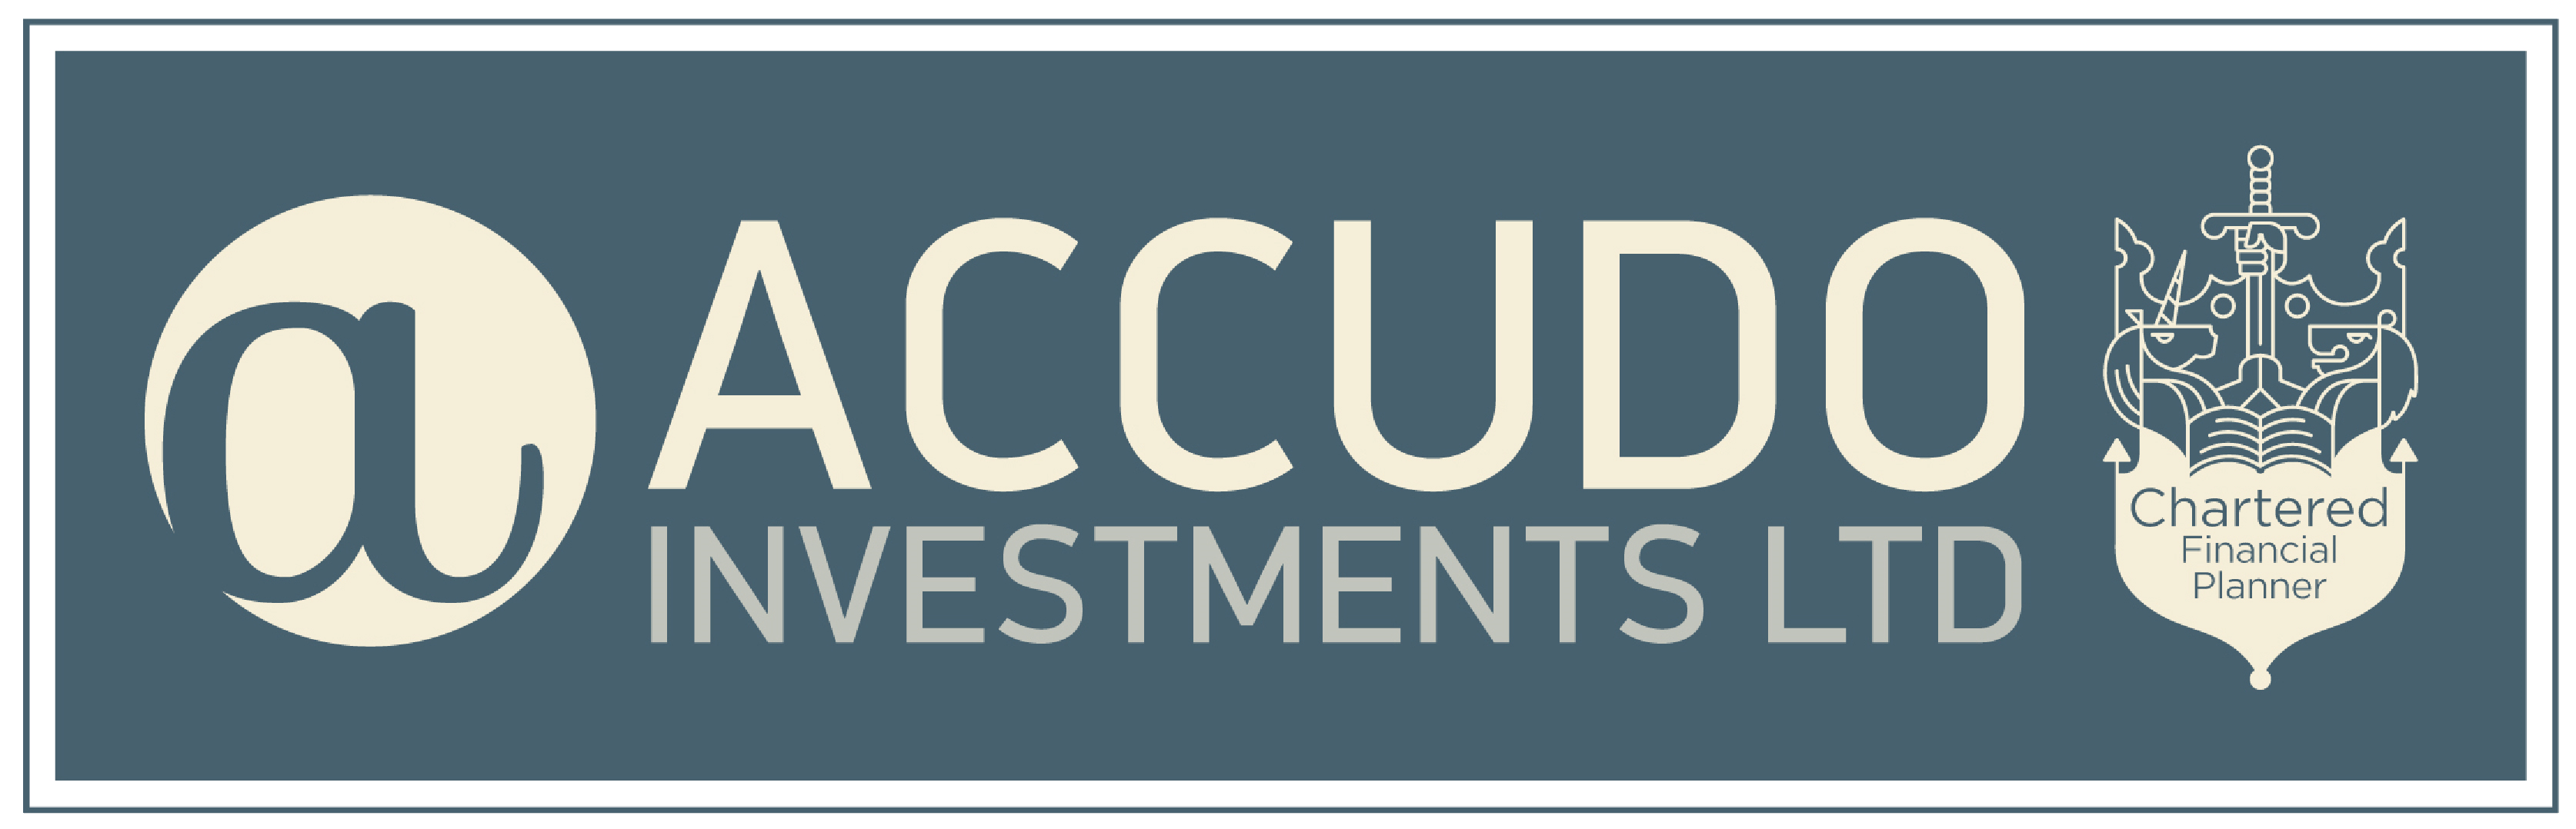 Accudo Investments Ltd